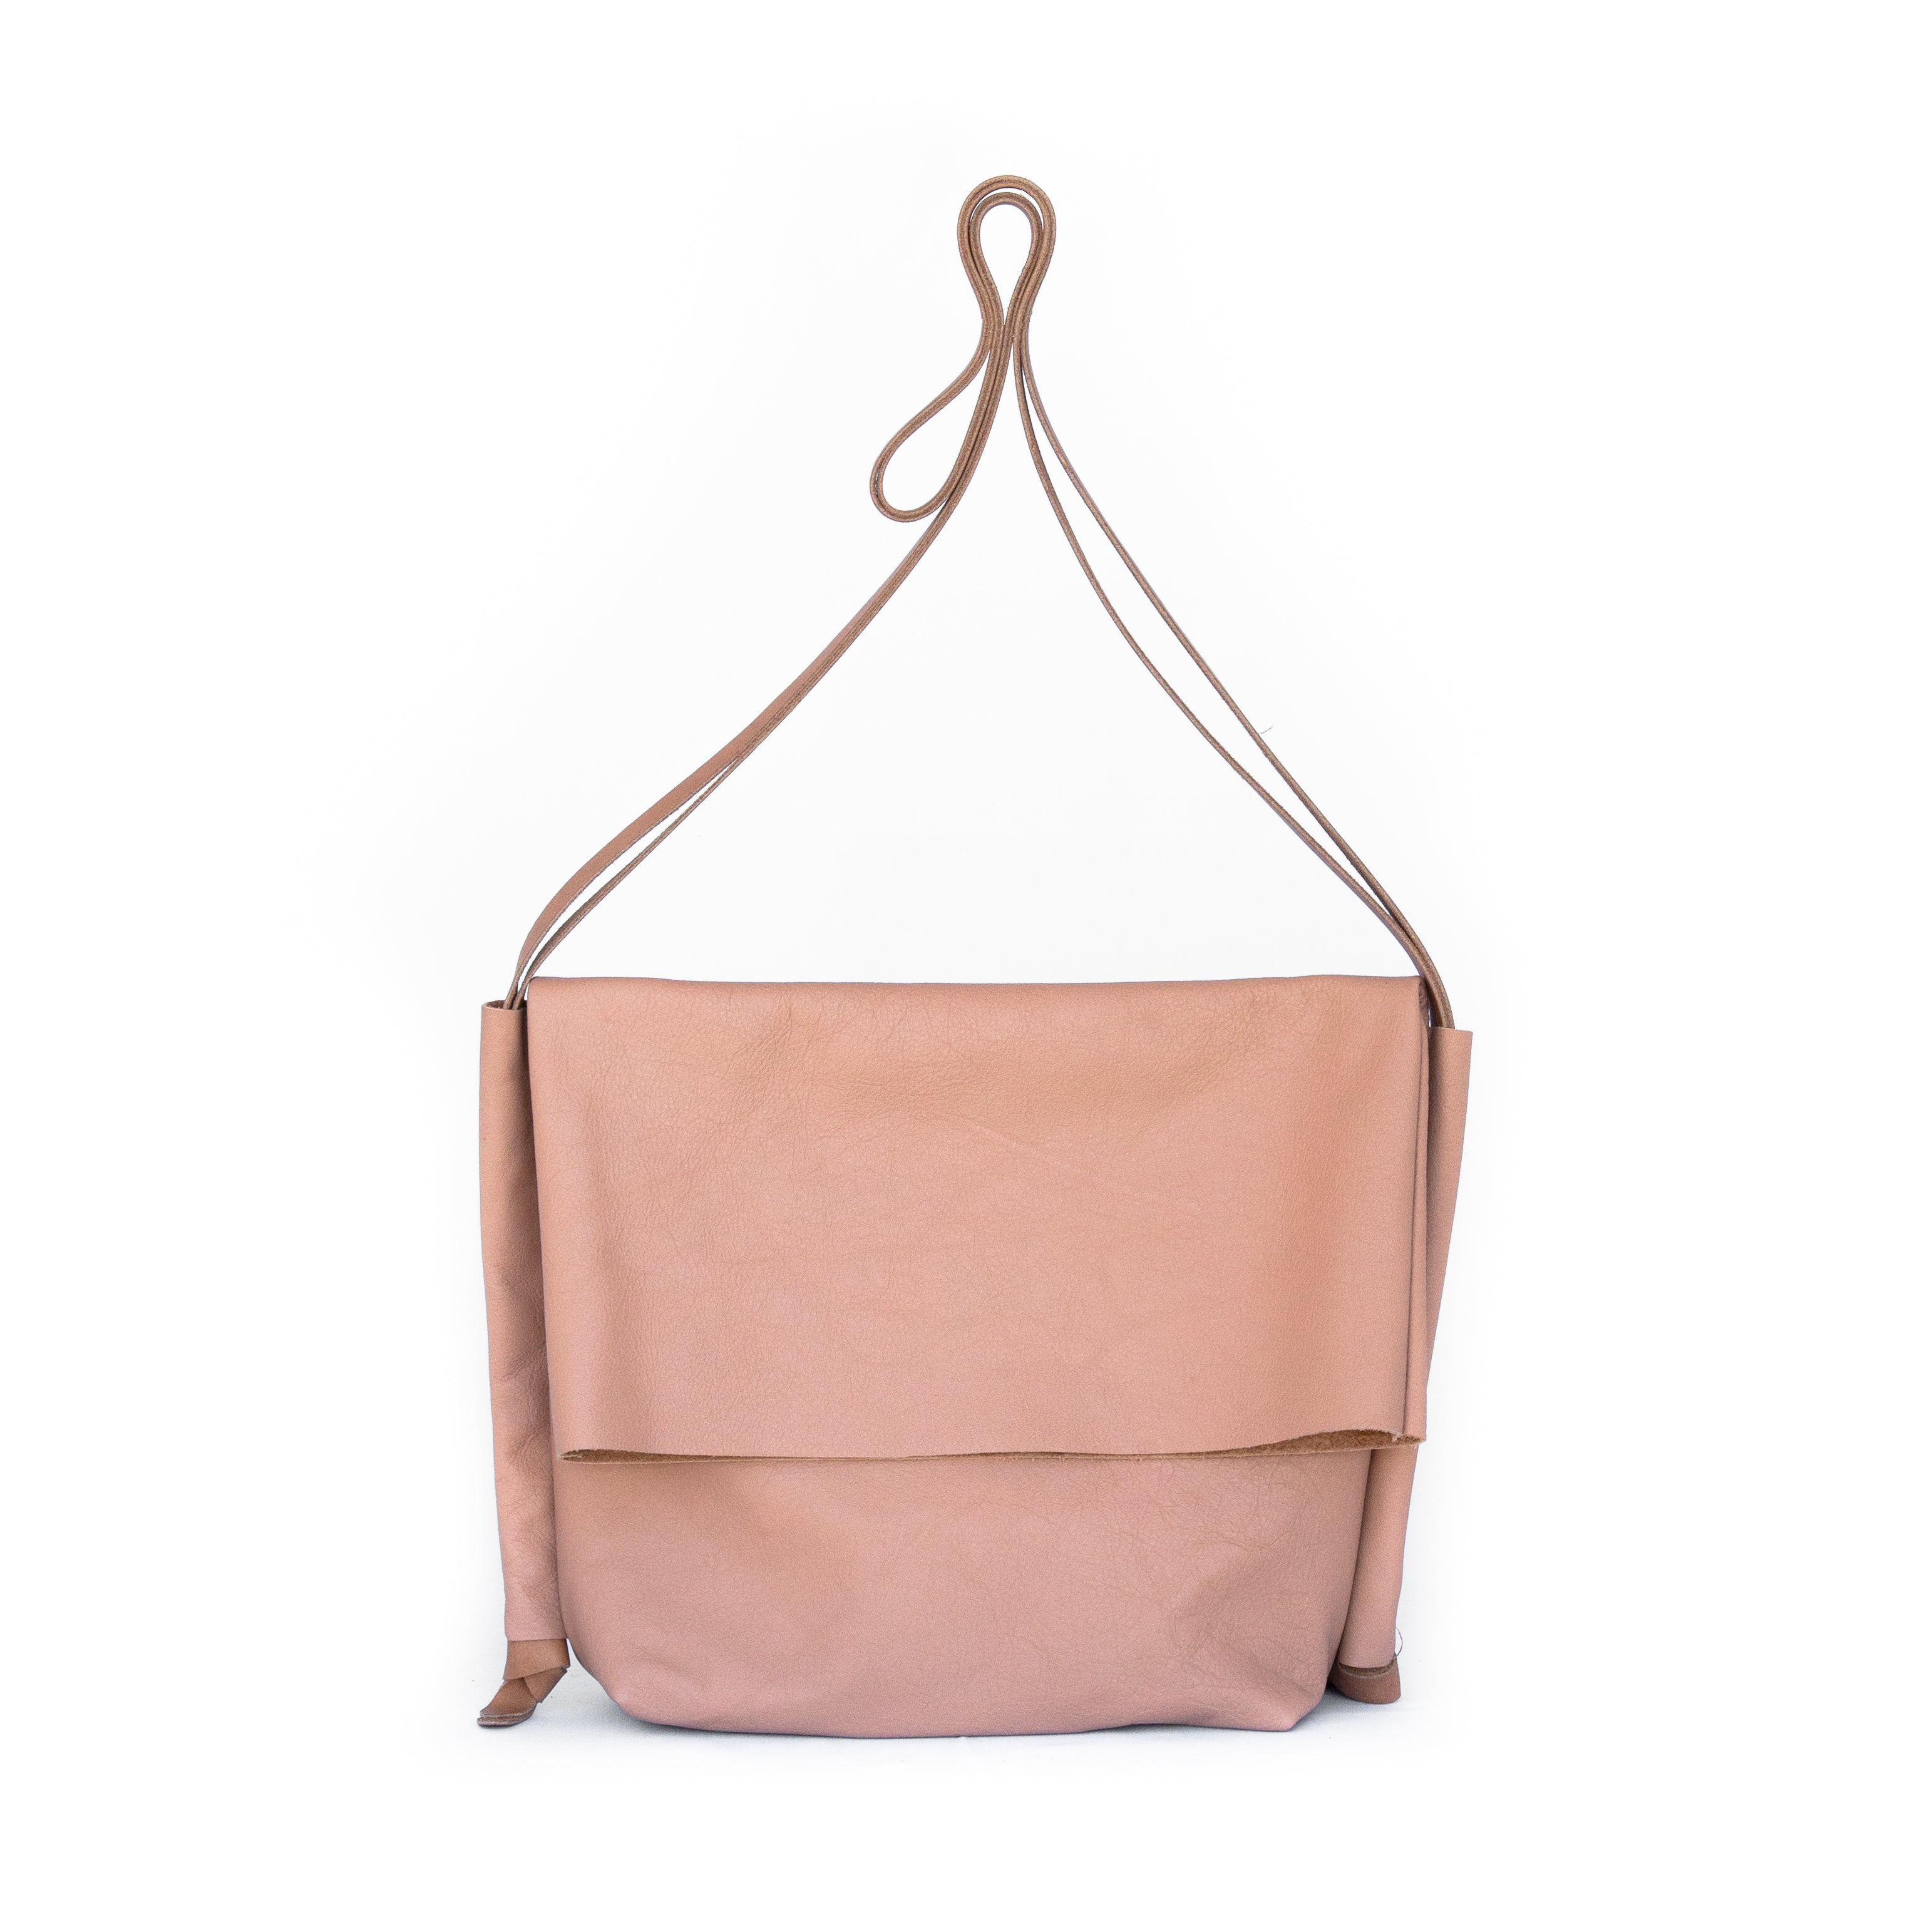 Flip Bag in Blush Leather - handcrafted by Market Canvas Leather in Tofino, BC, Canada